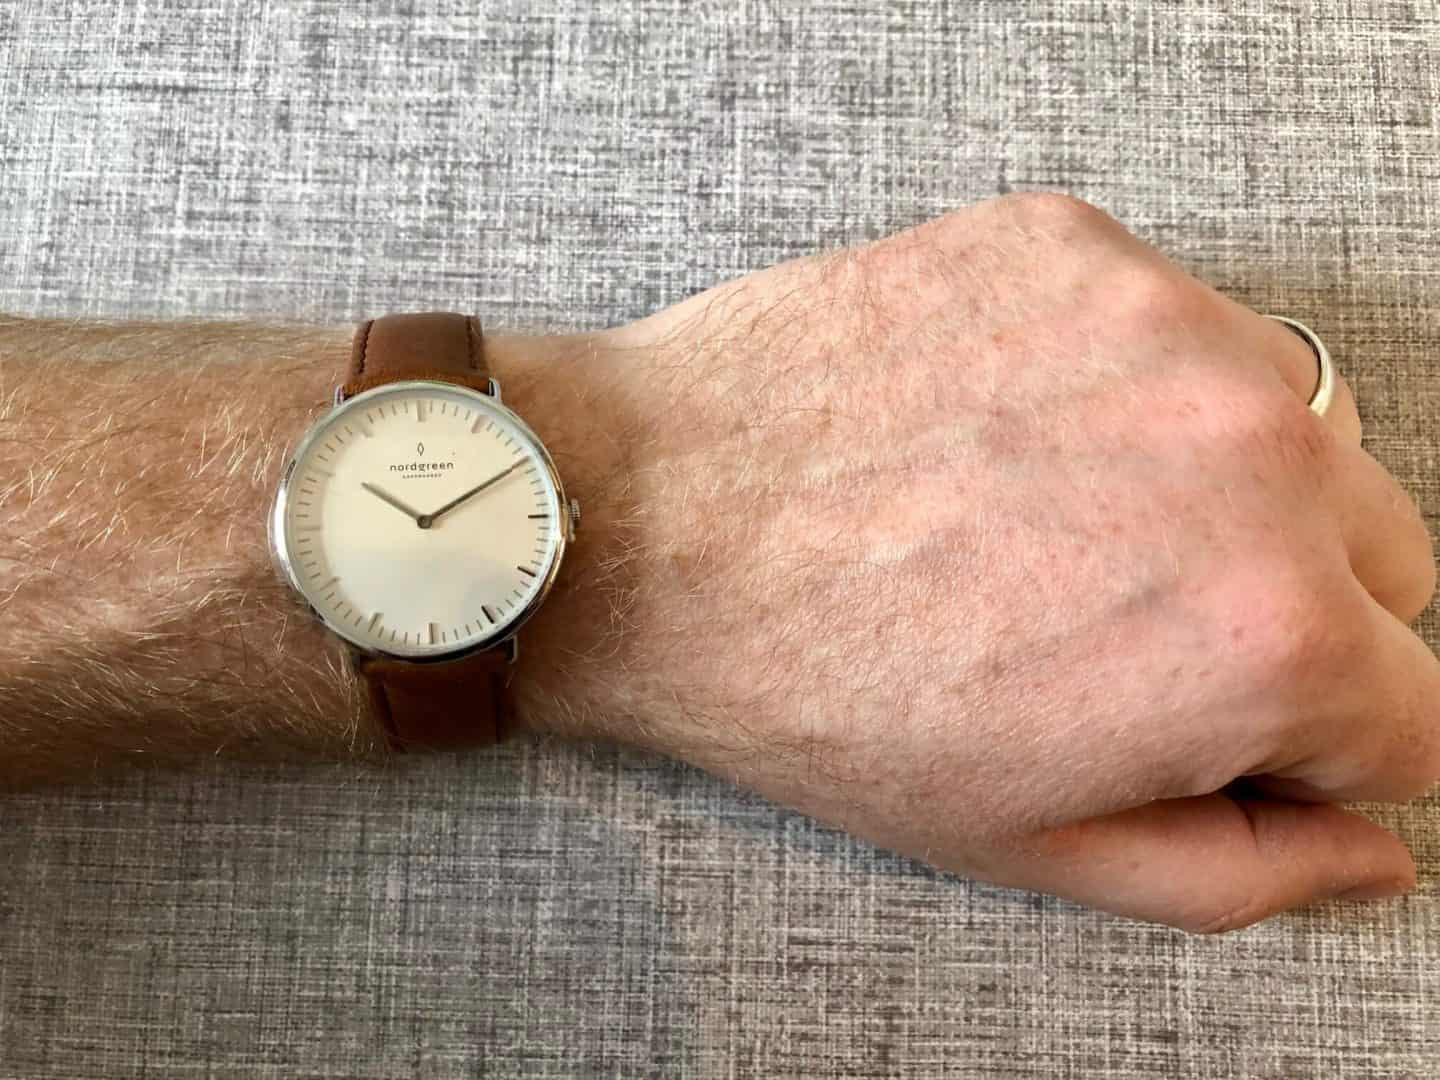 Nordgreen Unisex Watch Review